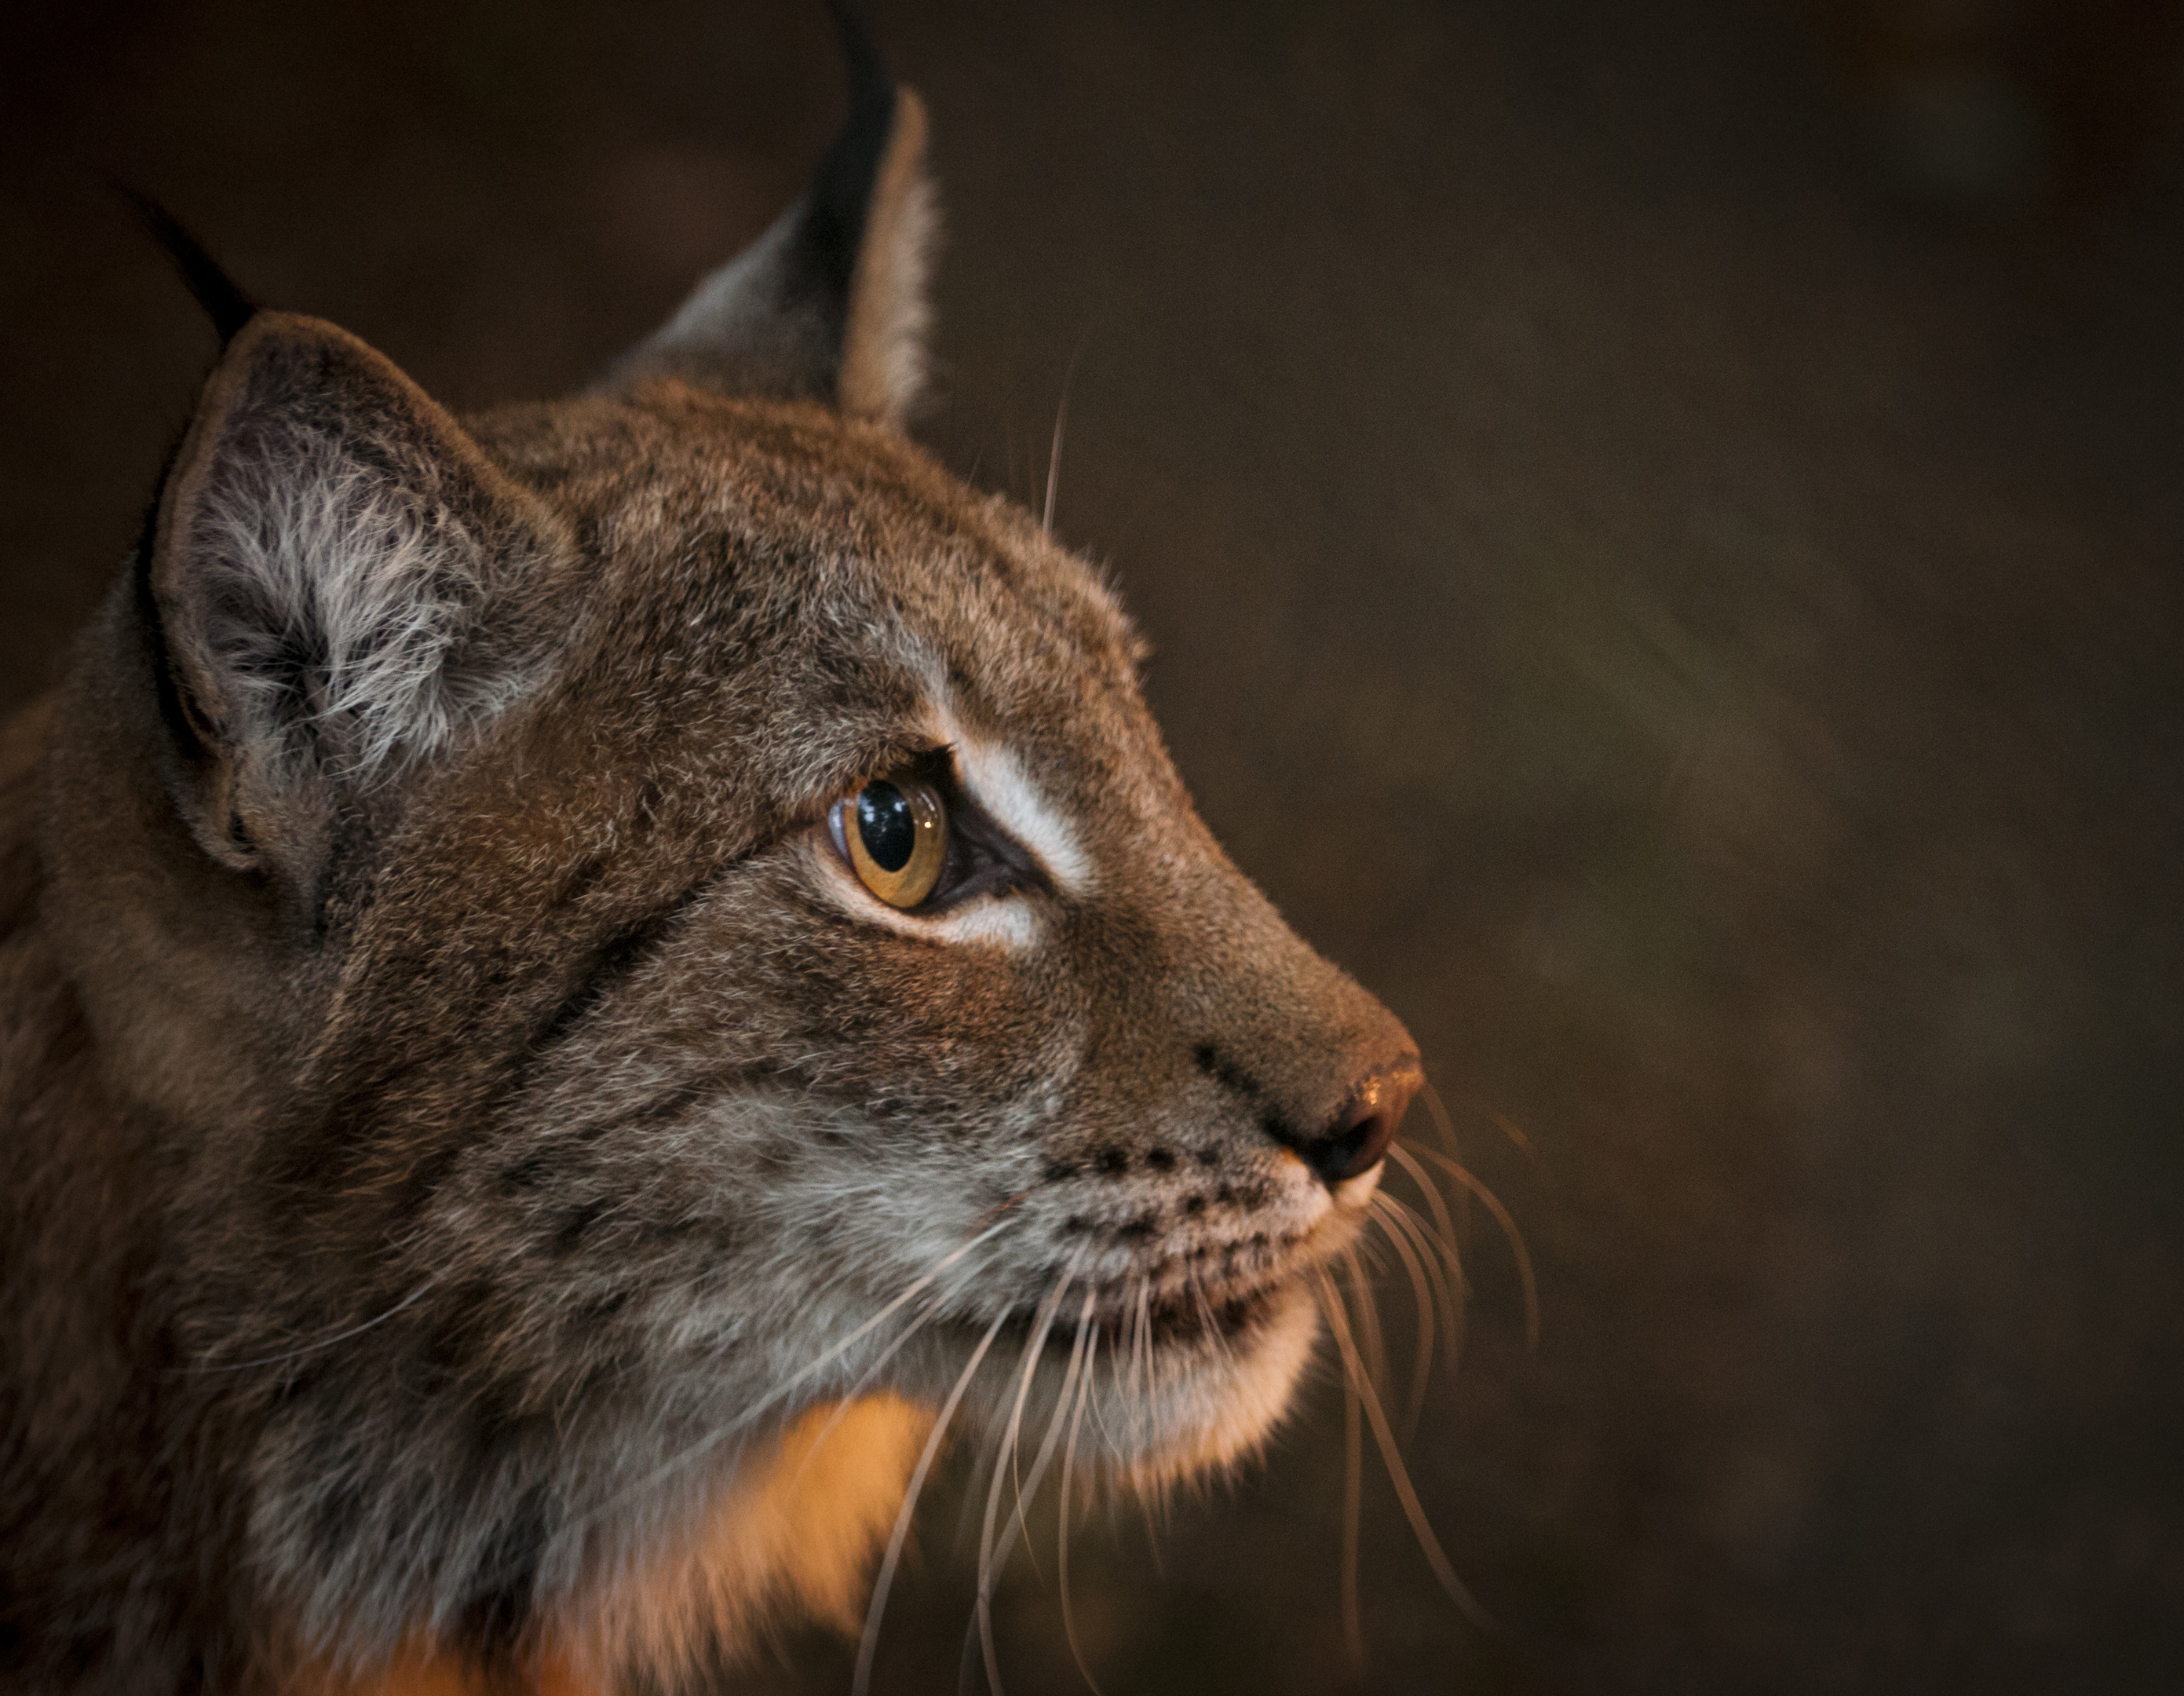 Lynx have proven to be a significant draw for eco-tourism in Europe